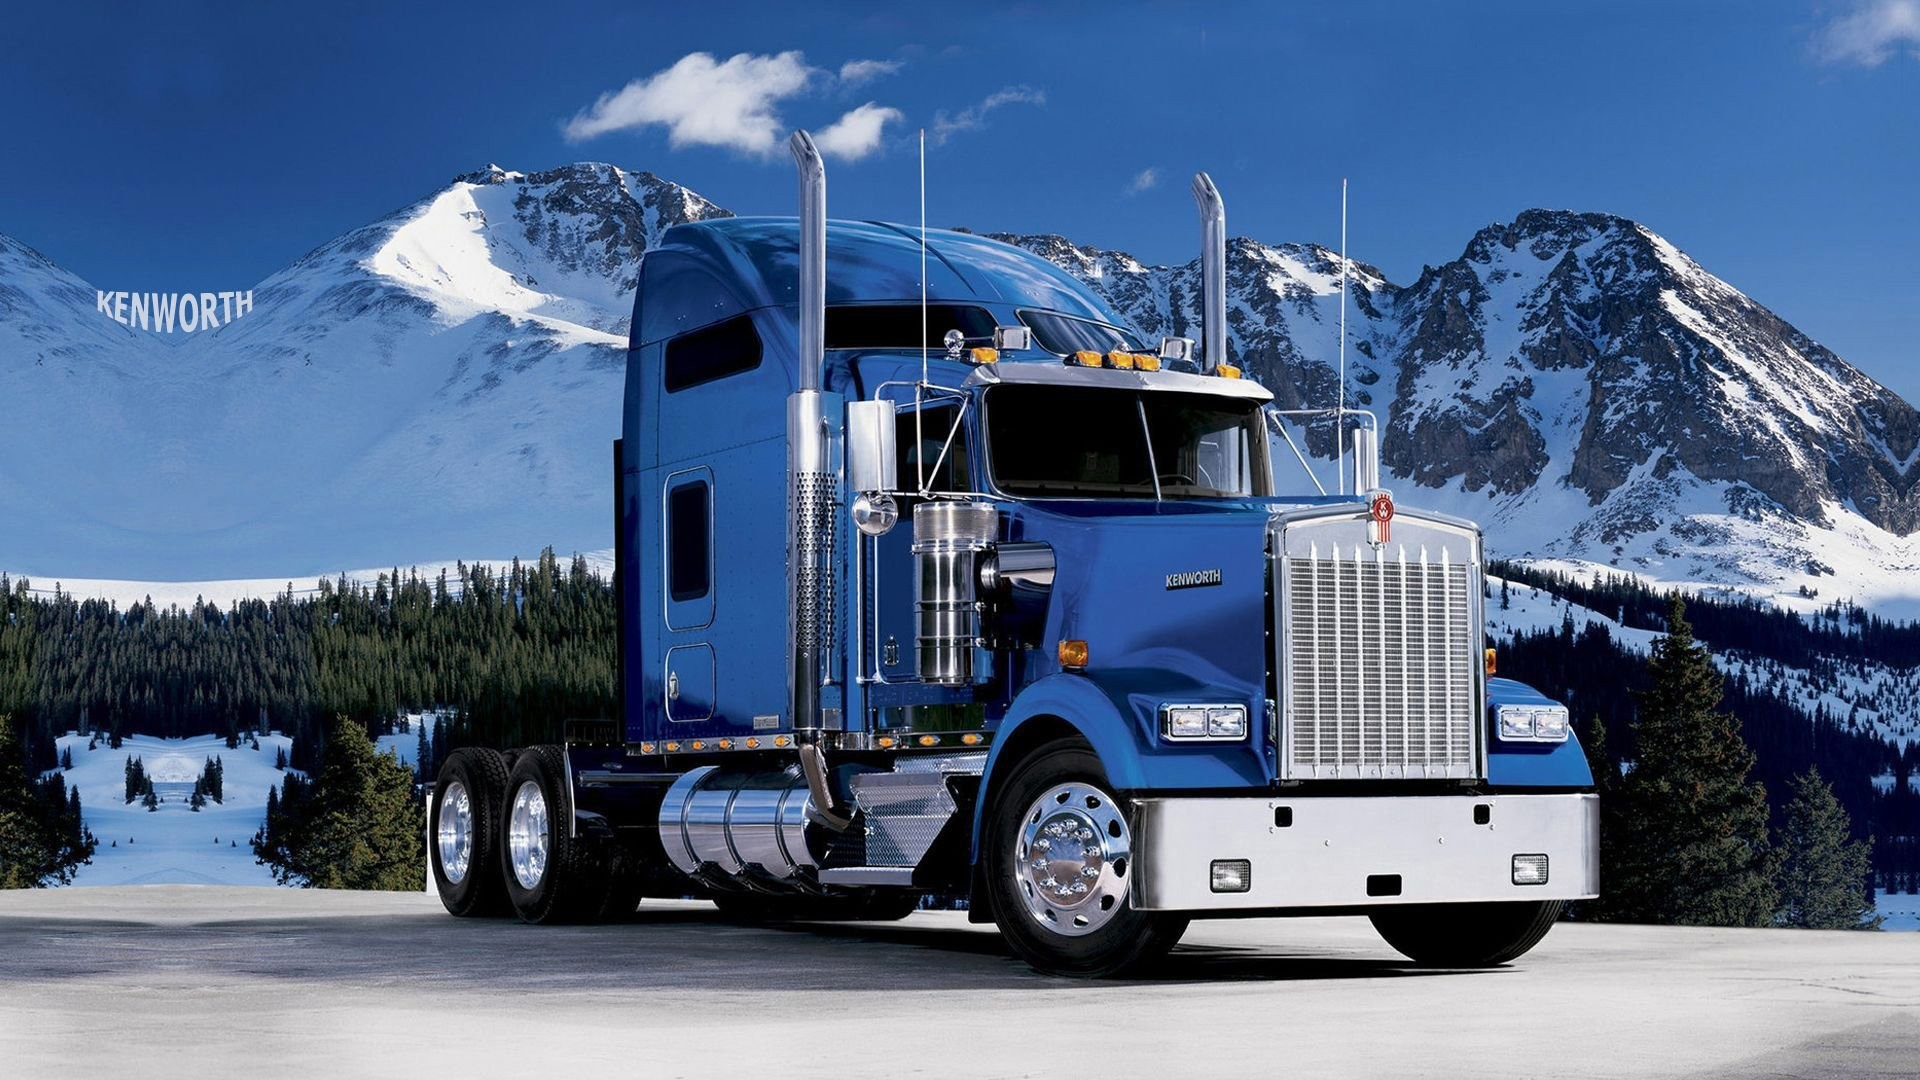 1920x1080  HD Wallpaper | Background Image ID:250464. Vehicles Kenworth